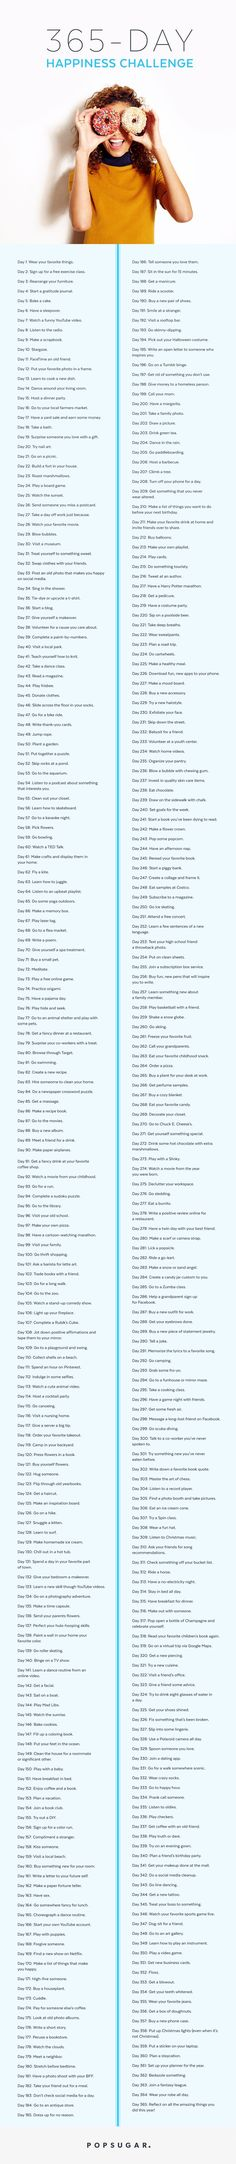 Pin for Later: The 365-Day Happiness Challenge Guaranteed to Change Your Life